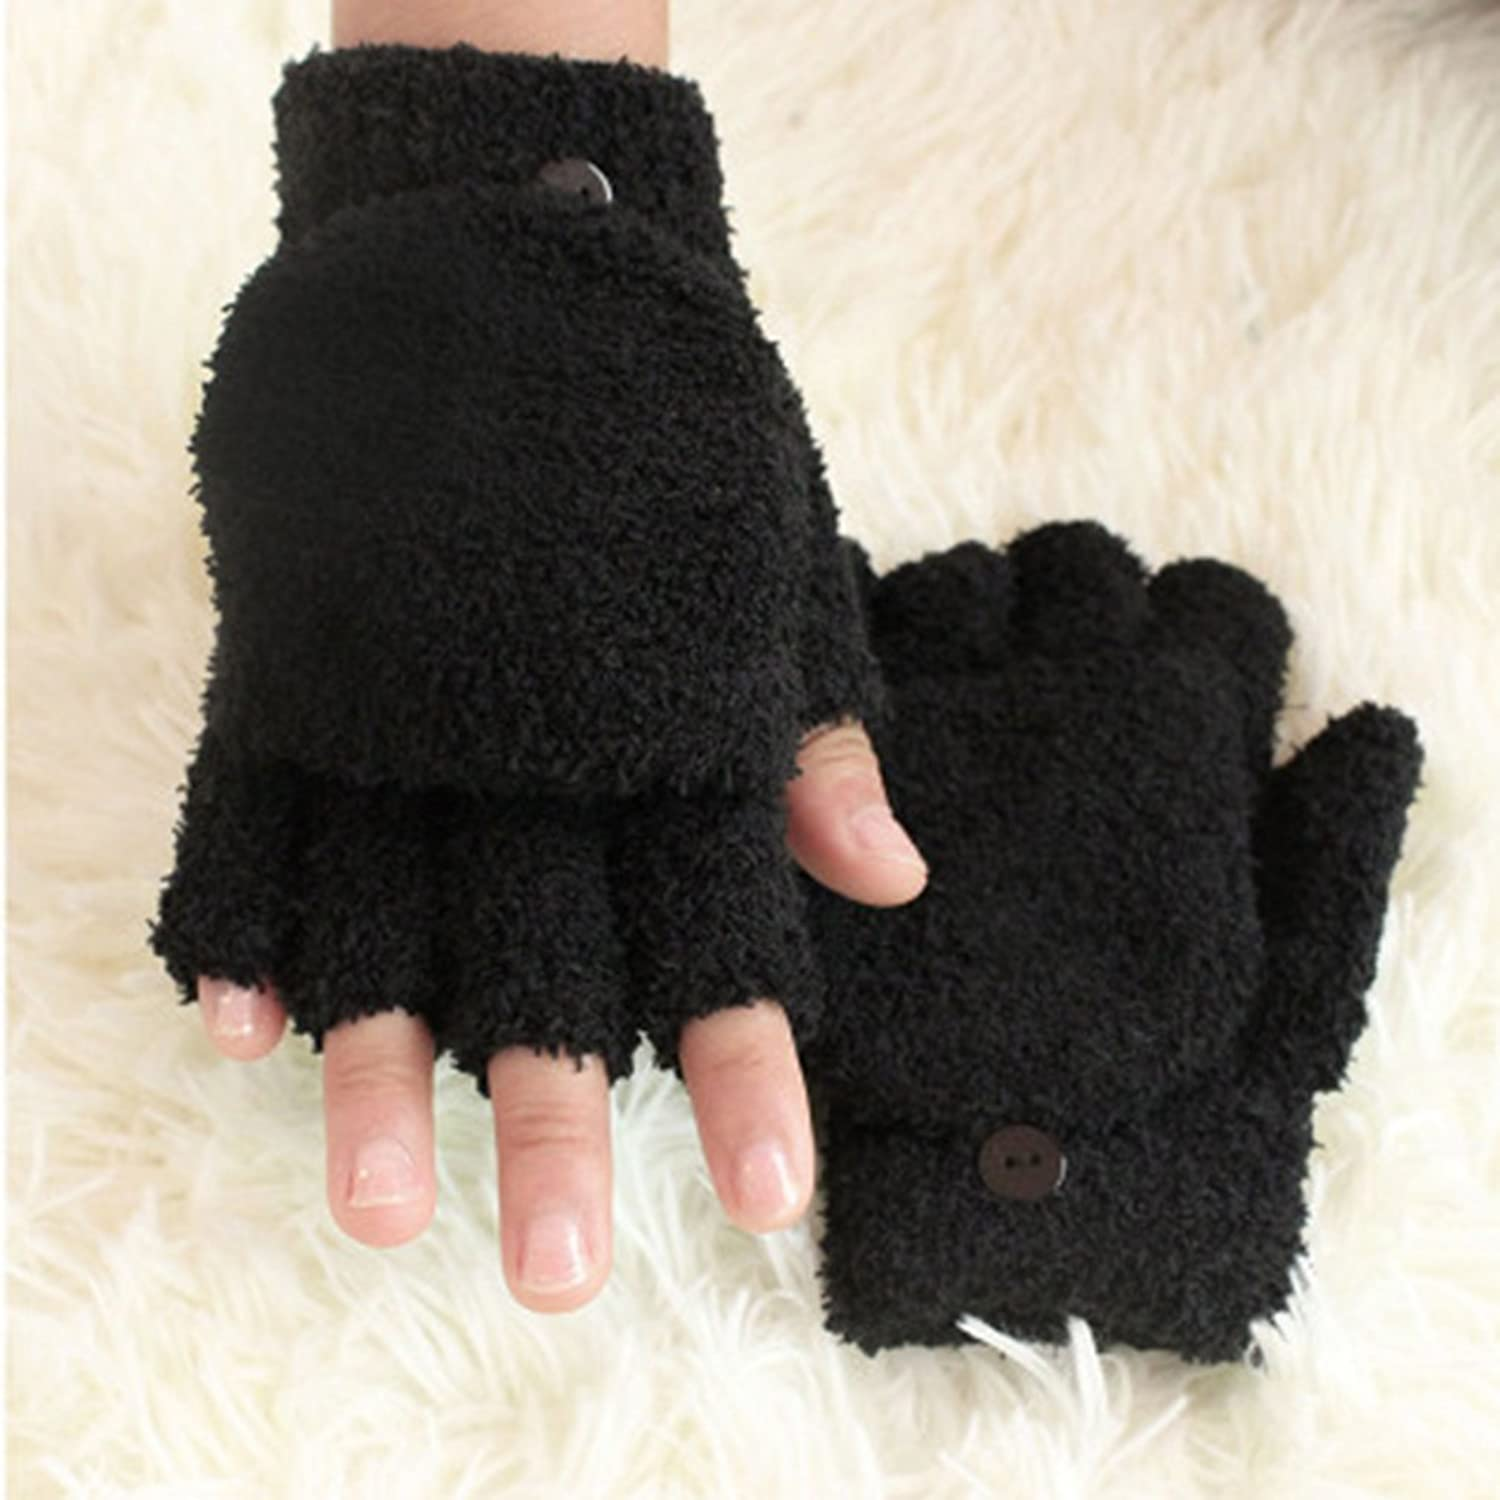 Women's Winter Fingerless Glov...